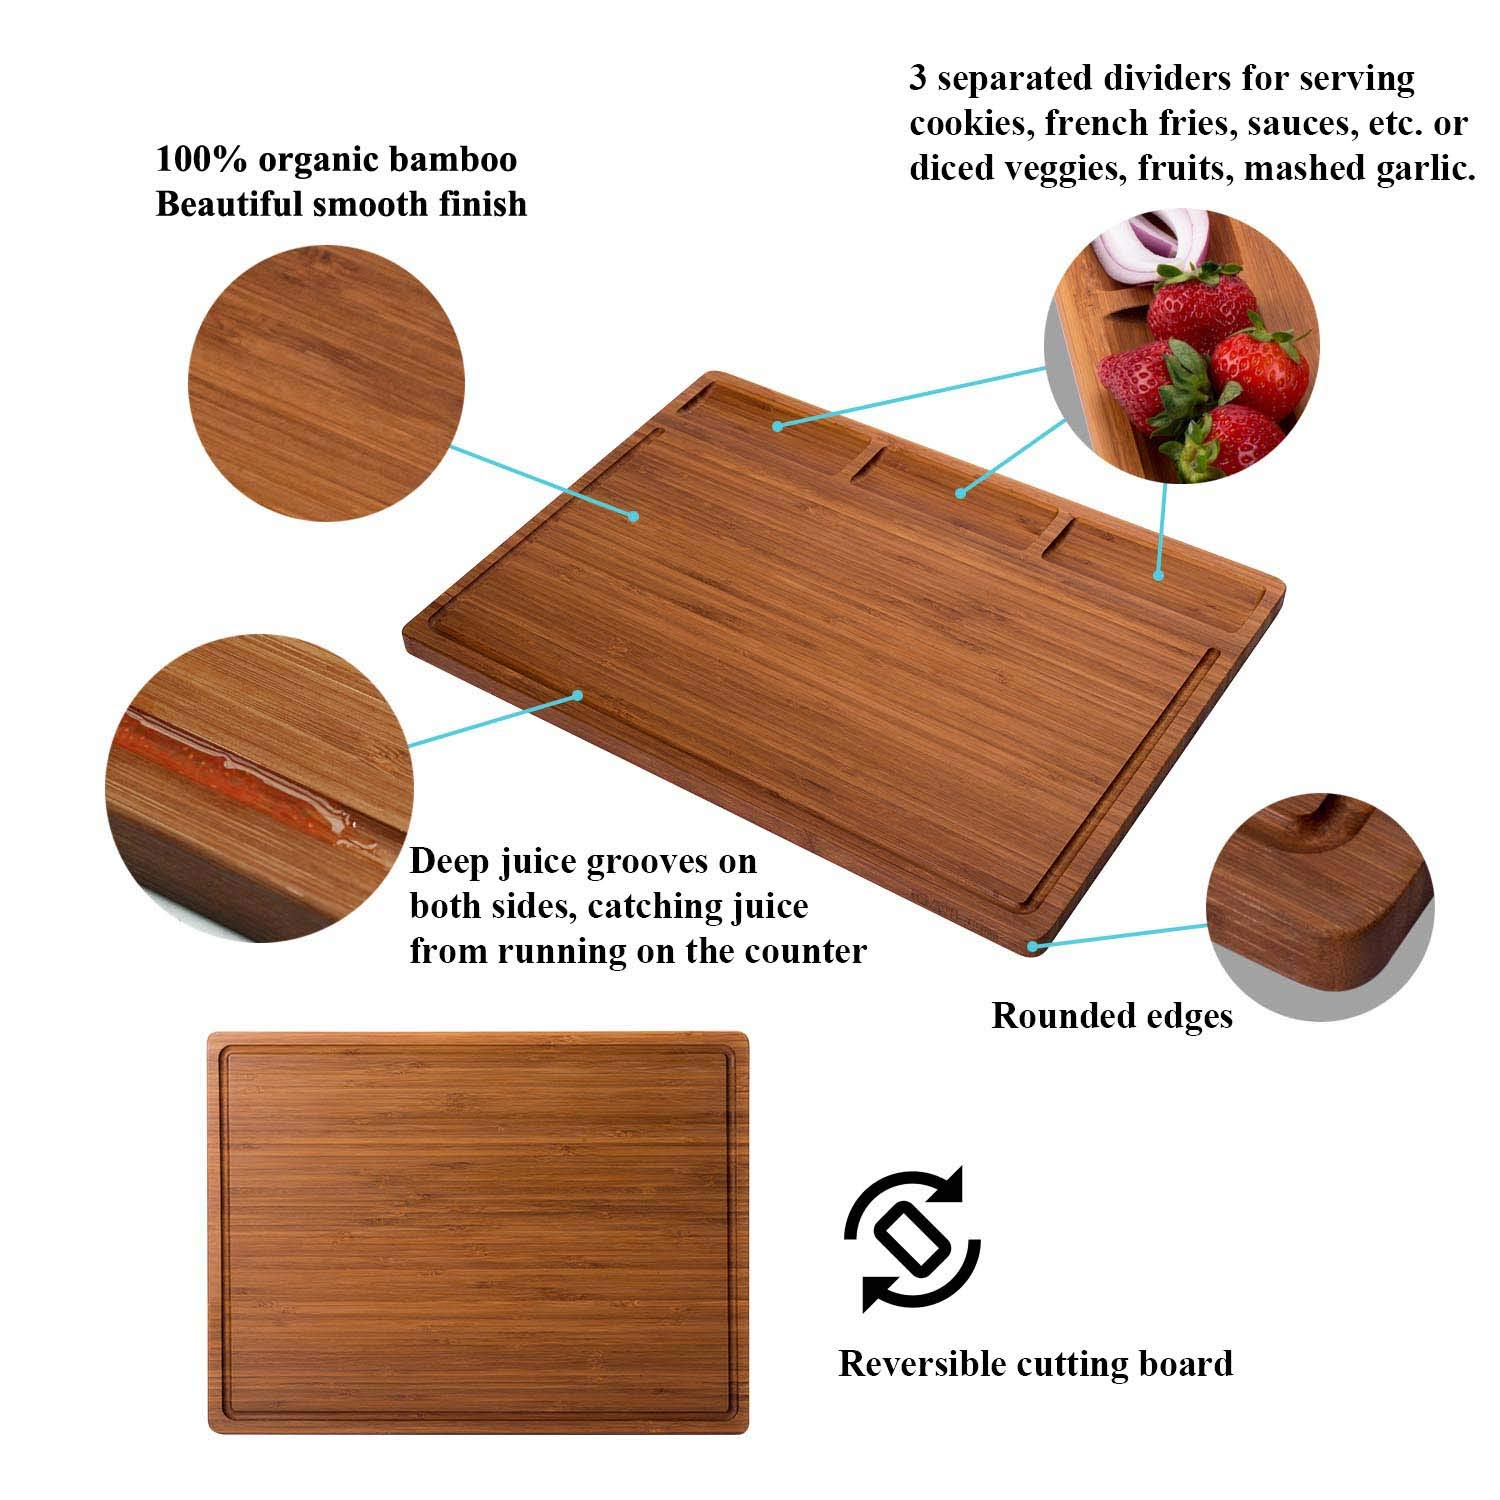 Reversible Heavy Duty Chopping Board Serving Tray Butcher Block Carving Board 17x12.6x0.62 Inch, Dark Bamboo Allsum Large Bamboo Kitchen Cutting Board With 3 Built-In Dividers And Juice Grooves